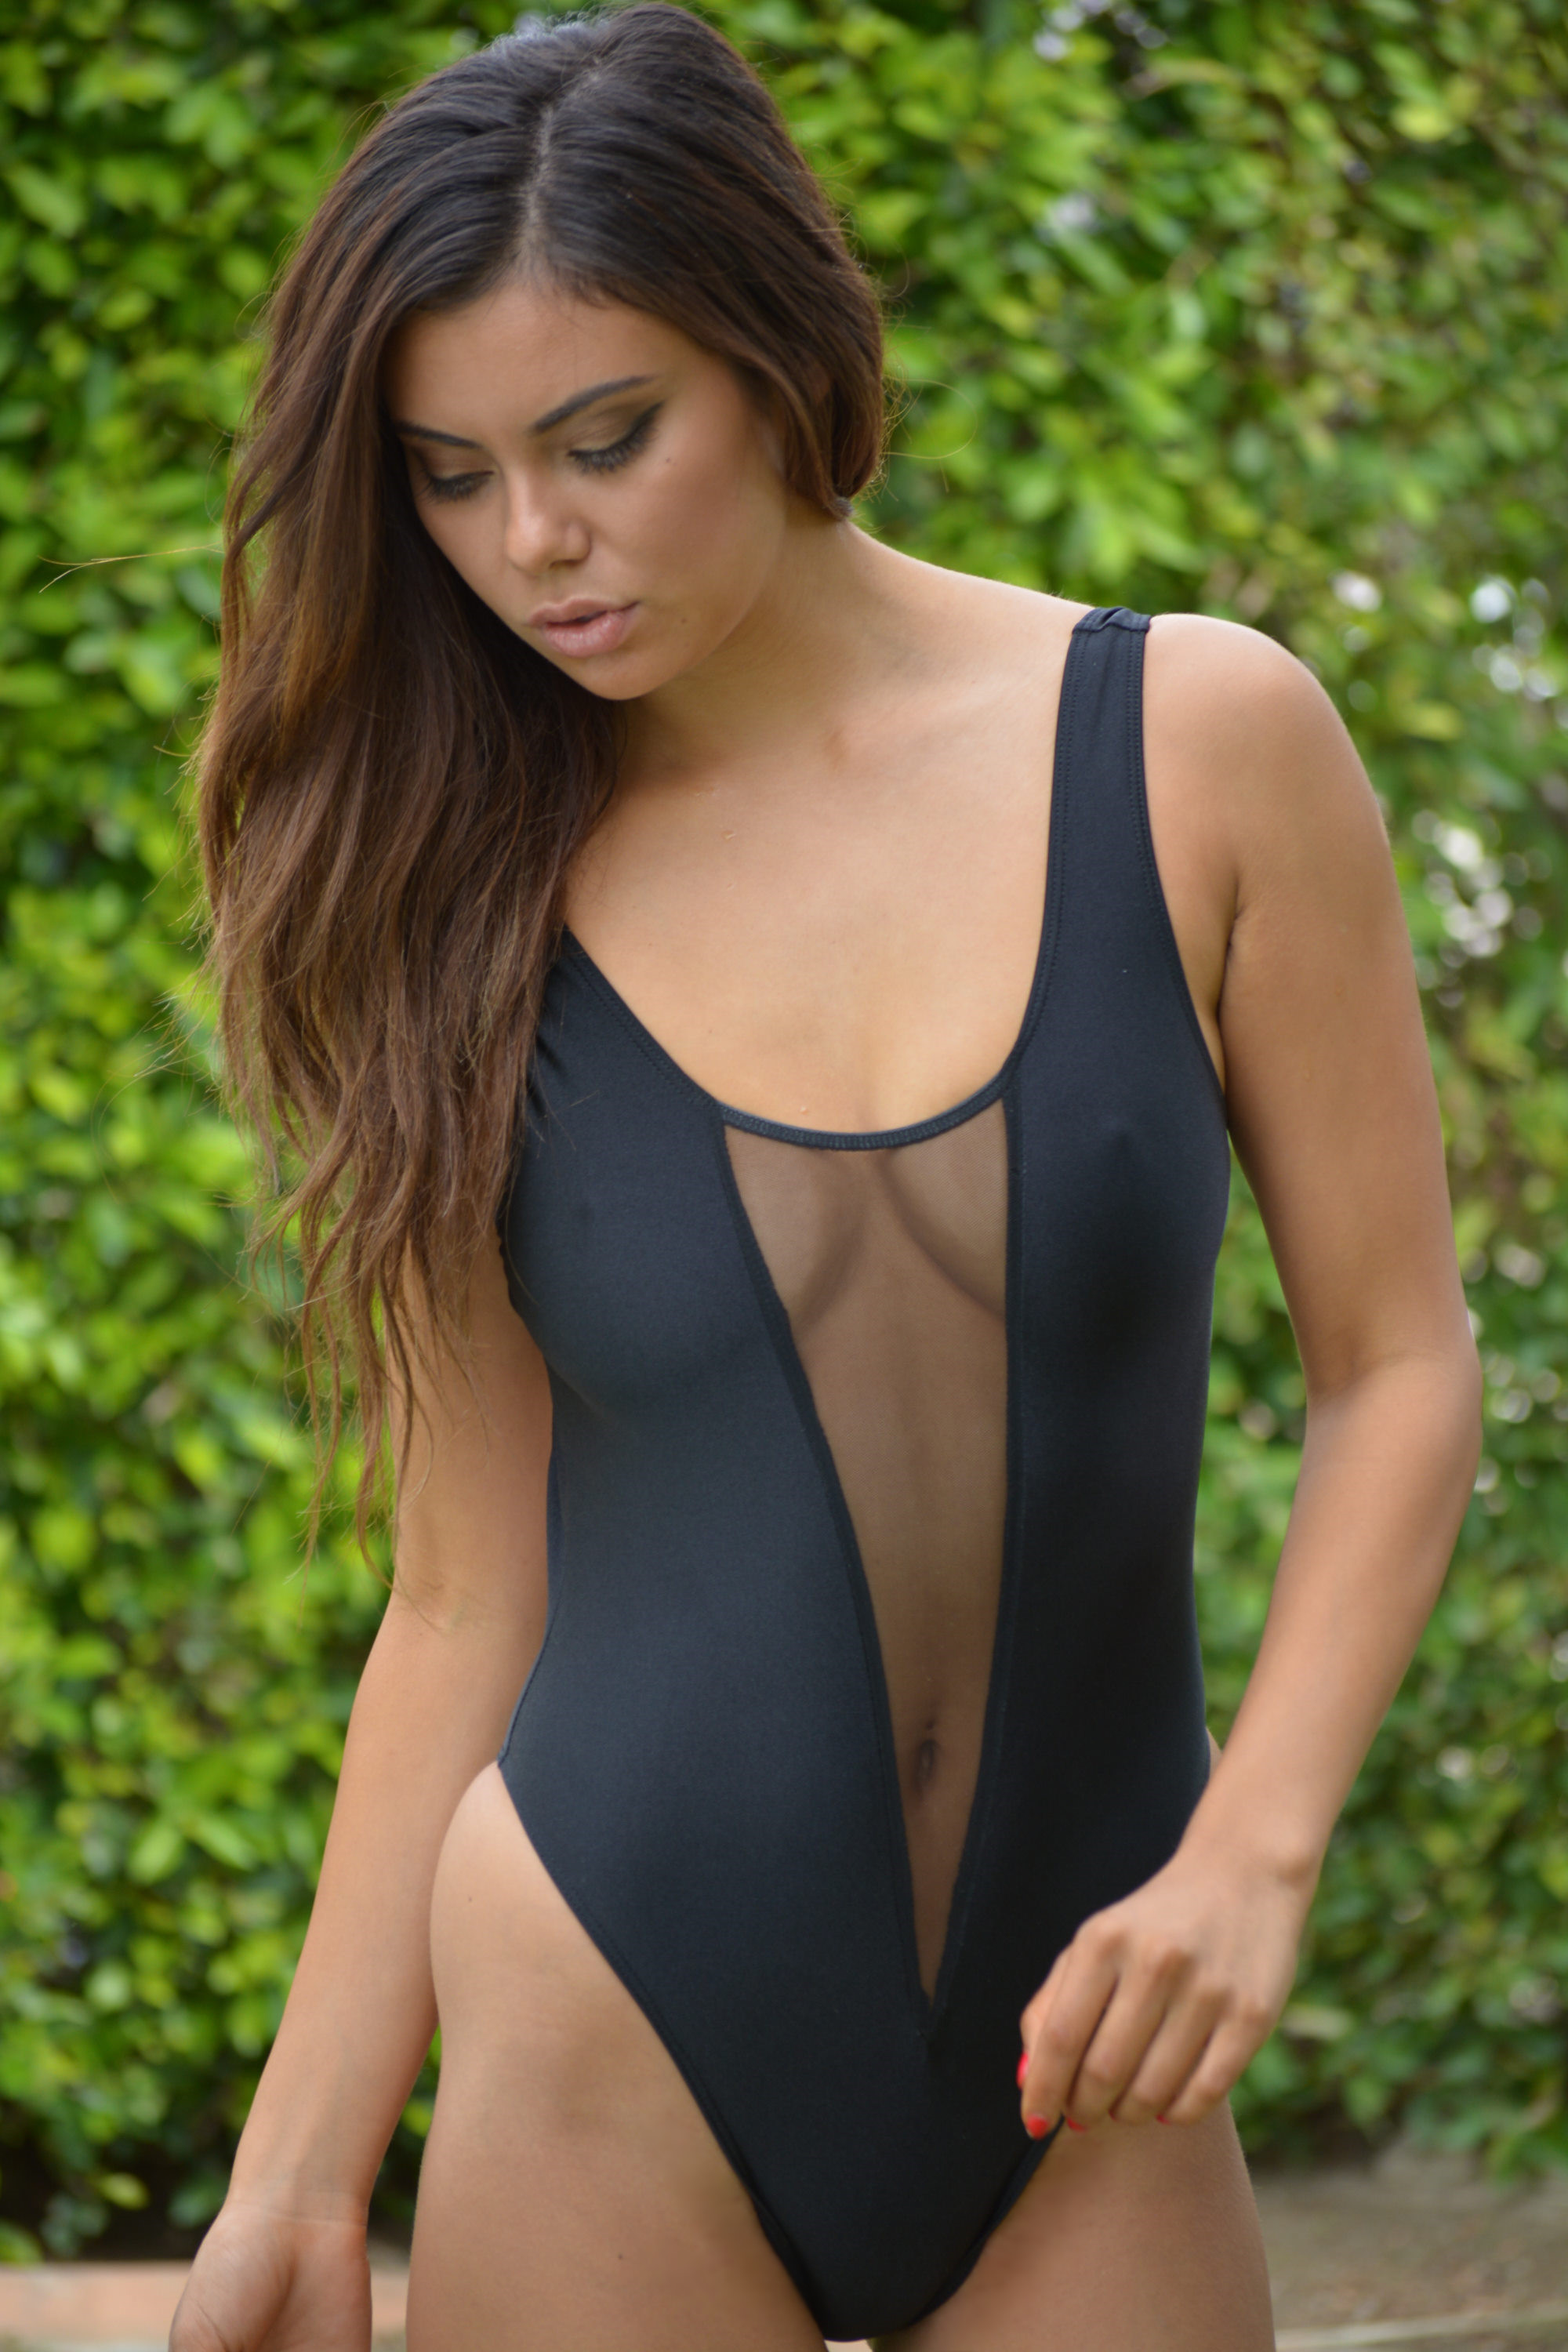 Wet swimsuit